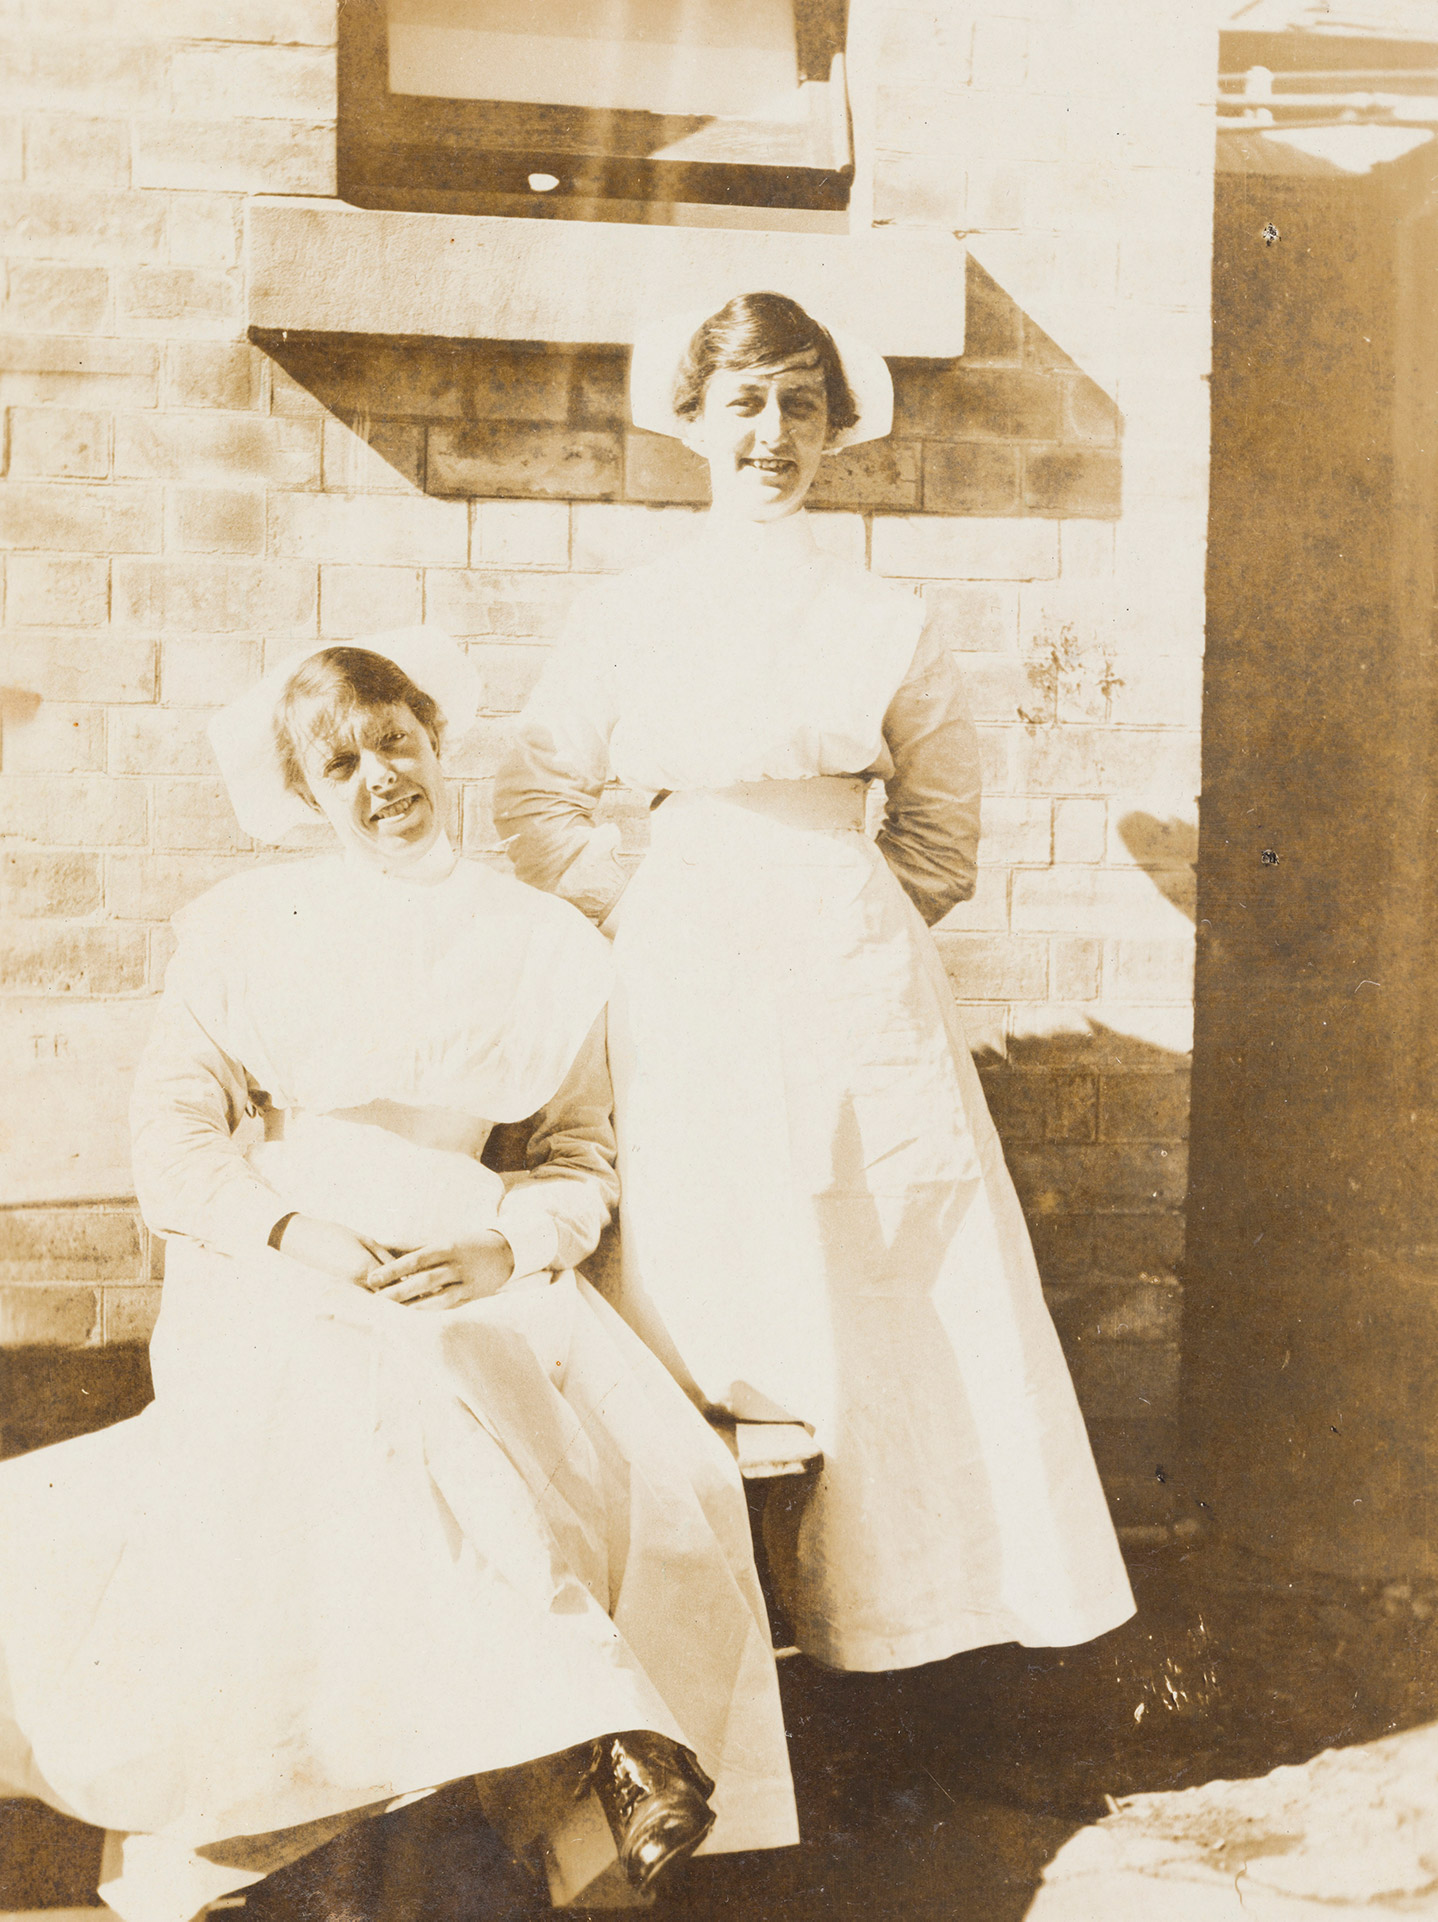 A sepia photograph depicting two women in nurse uniform, smiling.